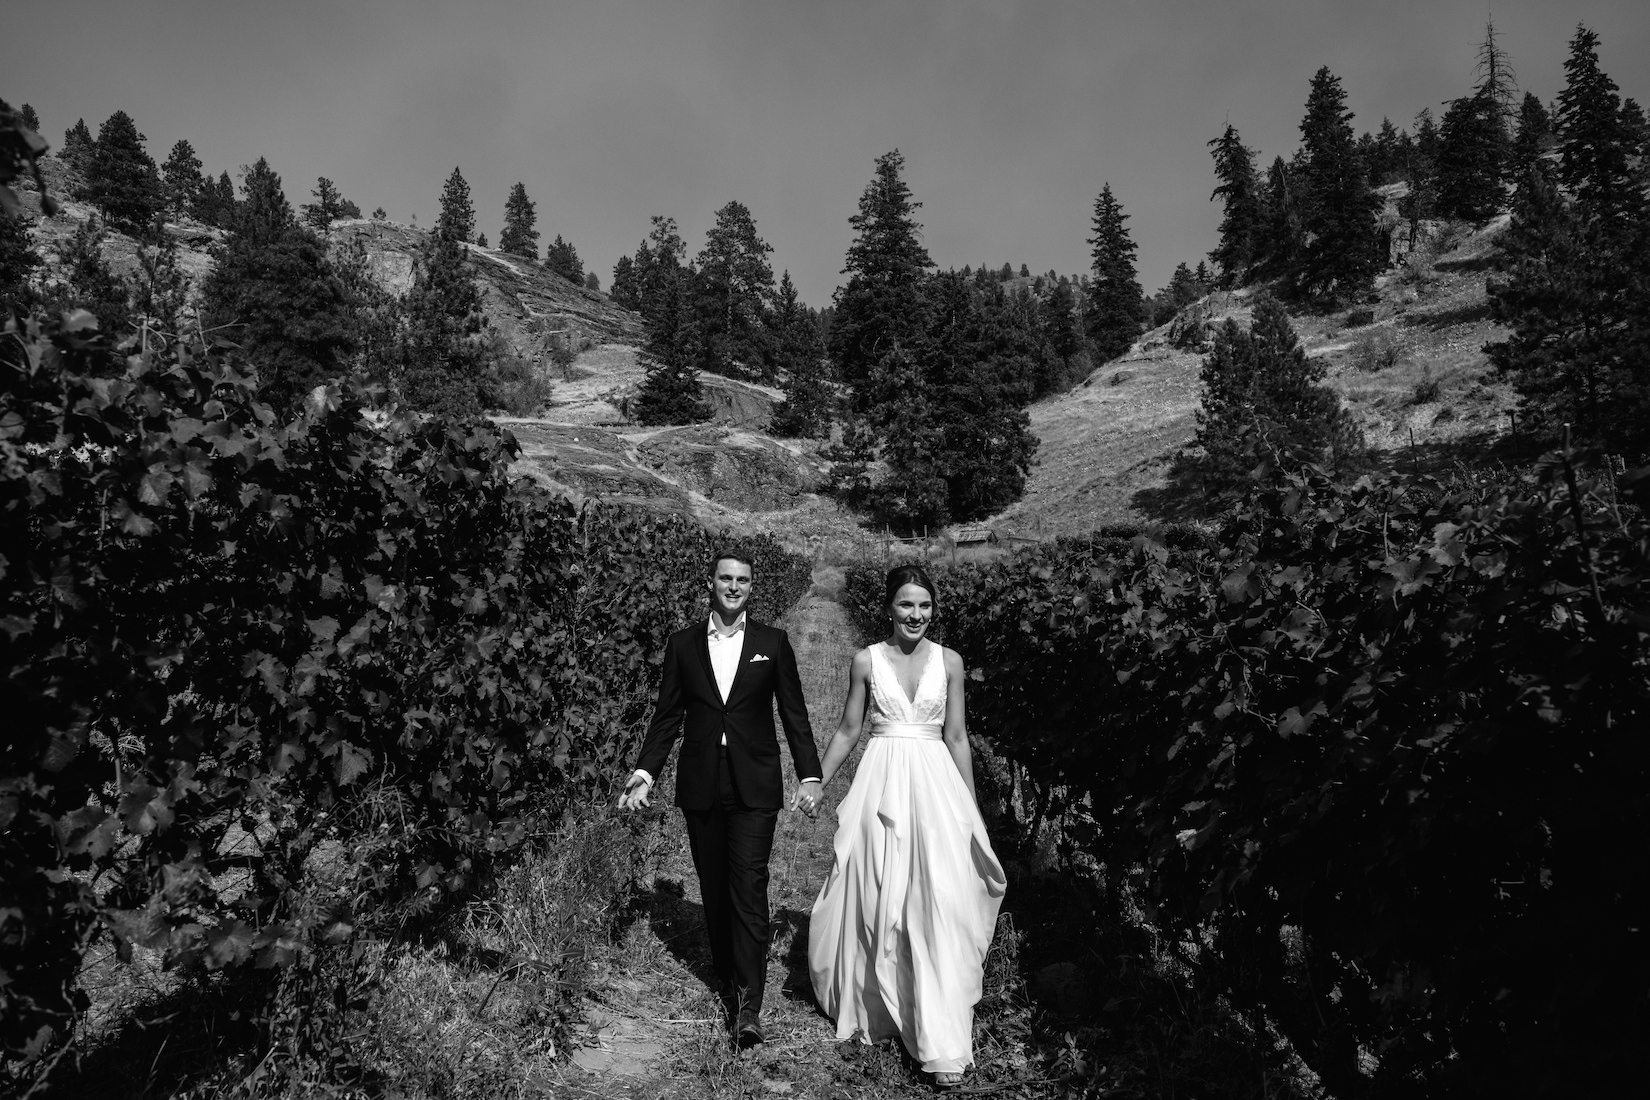 Gods-mountain-estate-weddings-17.jpg